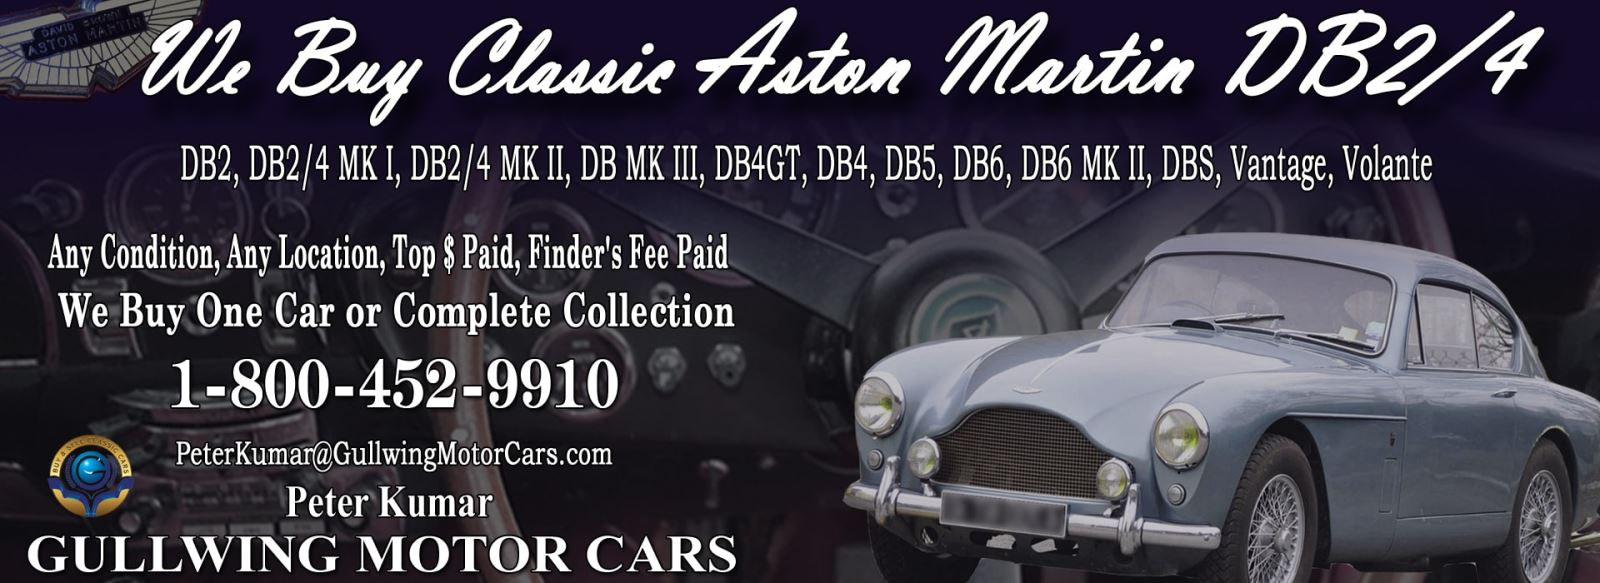 Classic Aston Martin DB2-4 for sale, we buy vintage Aston Martin DB2/4. Call Peter Kumar. Gullwing Motor